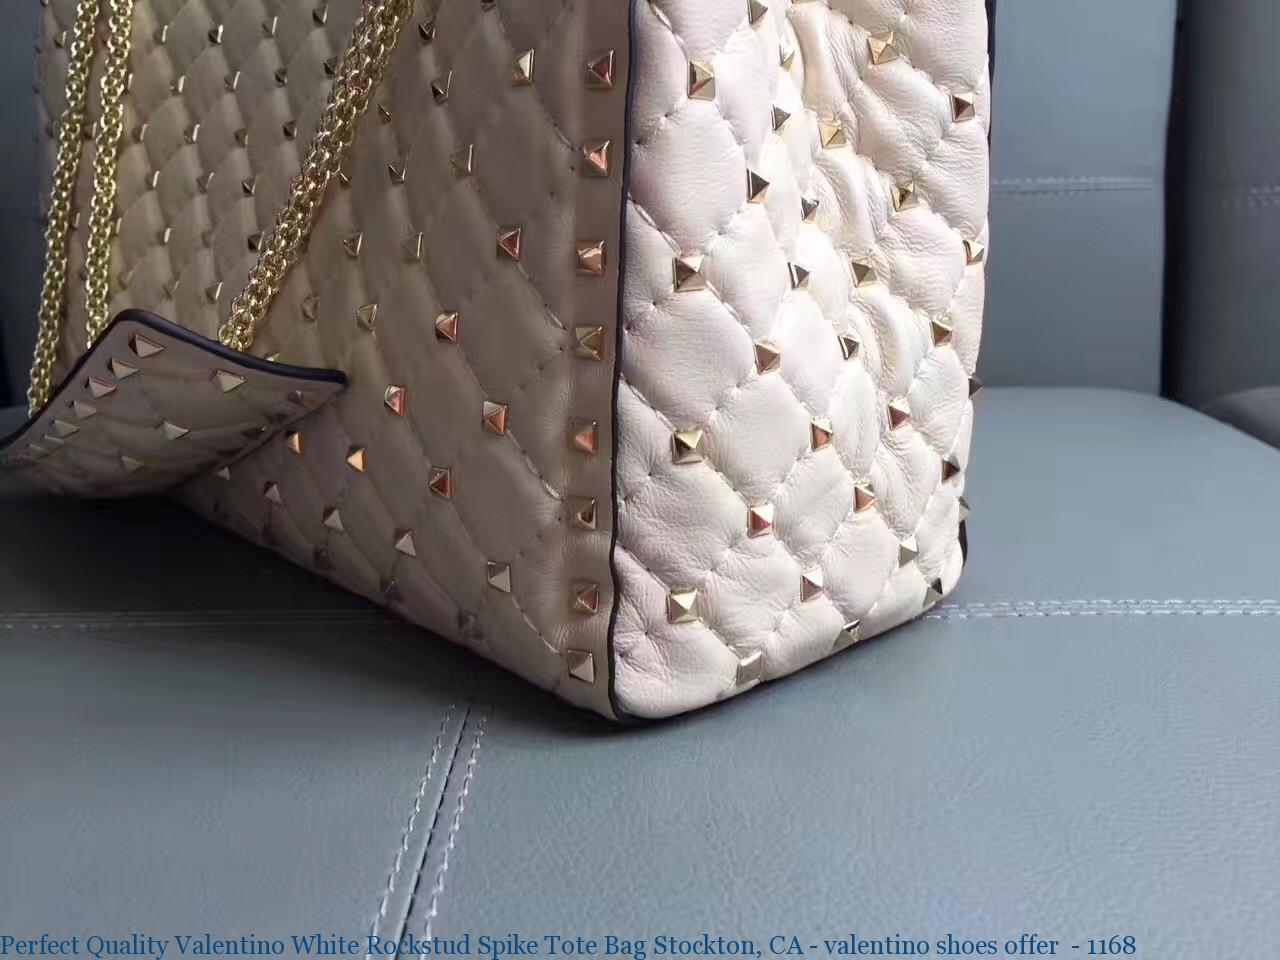 Perfect Quality Valentino White Rockstud Spike Tote Bag